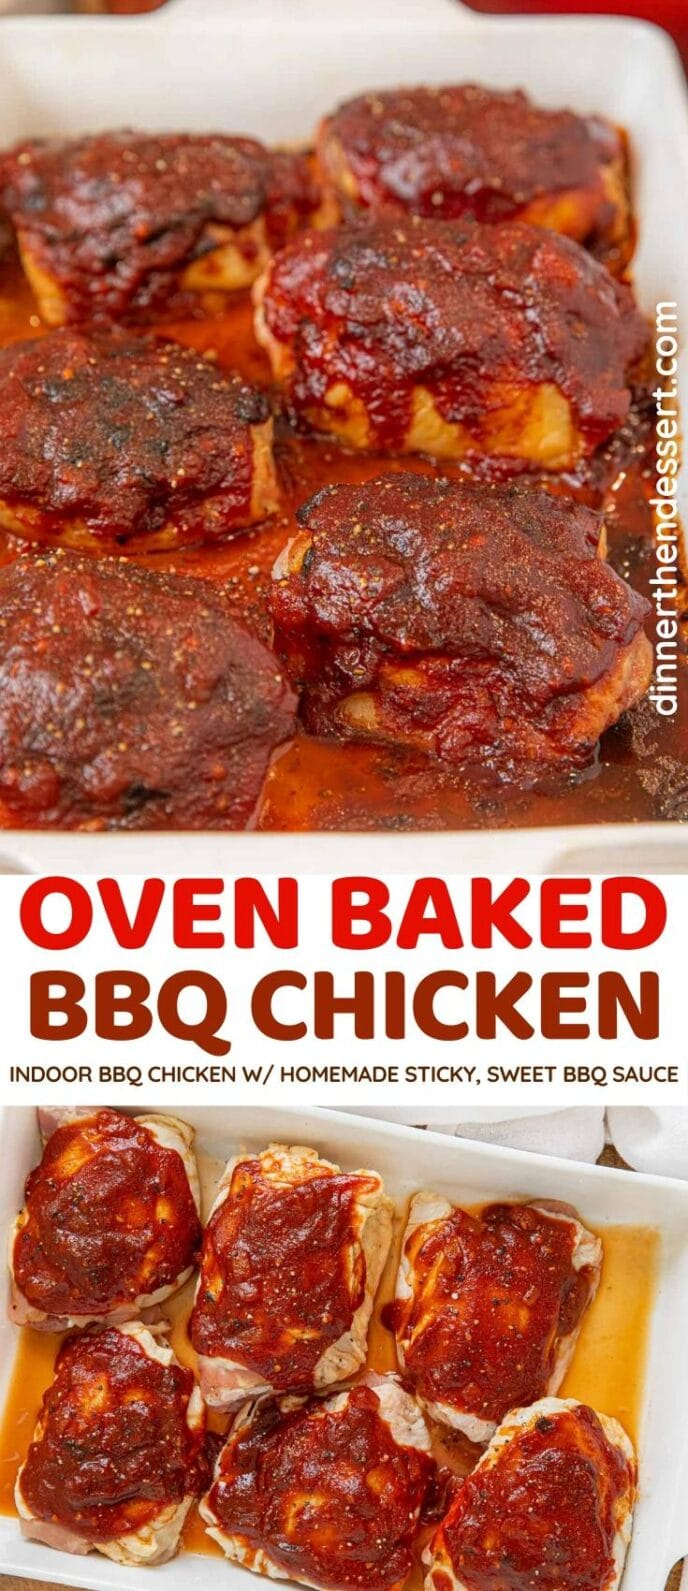 Oven Baked BBQ Chicken collage